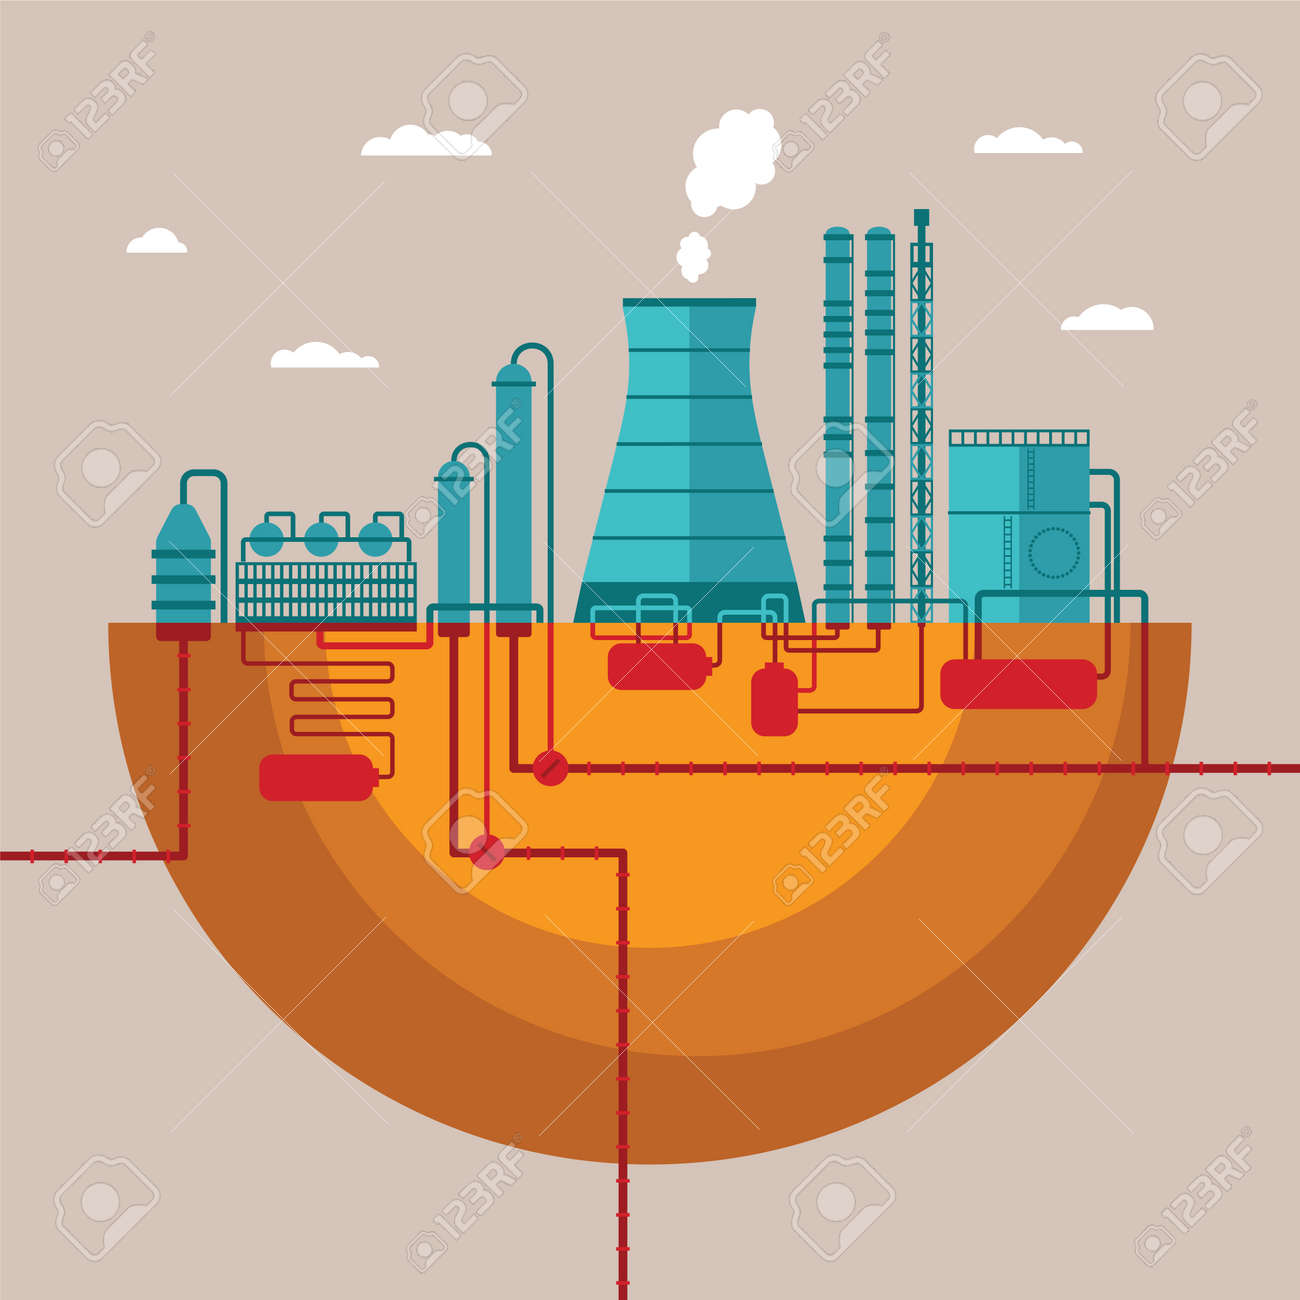 concept of refinery plant for processing natural resources or